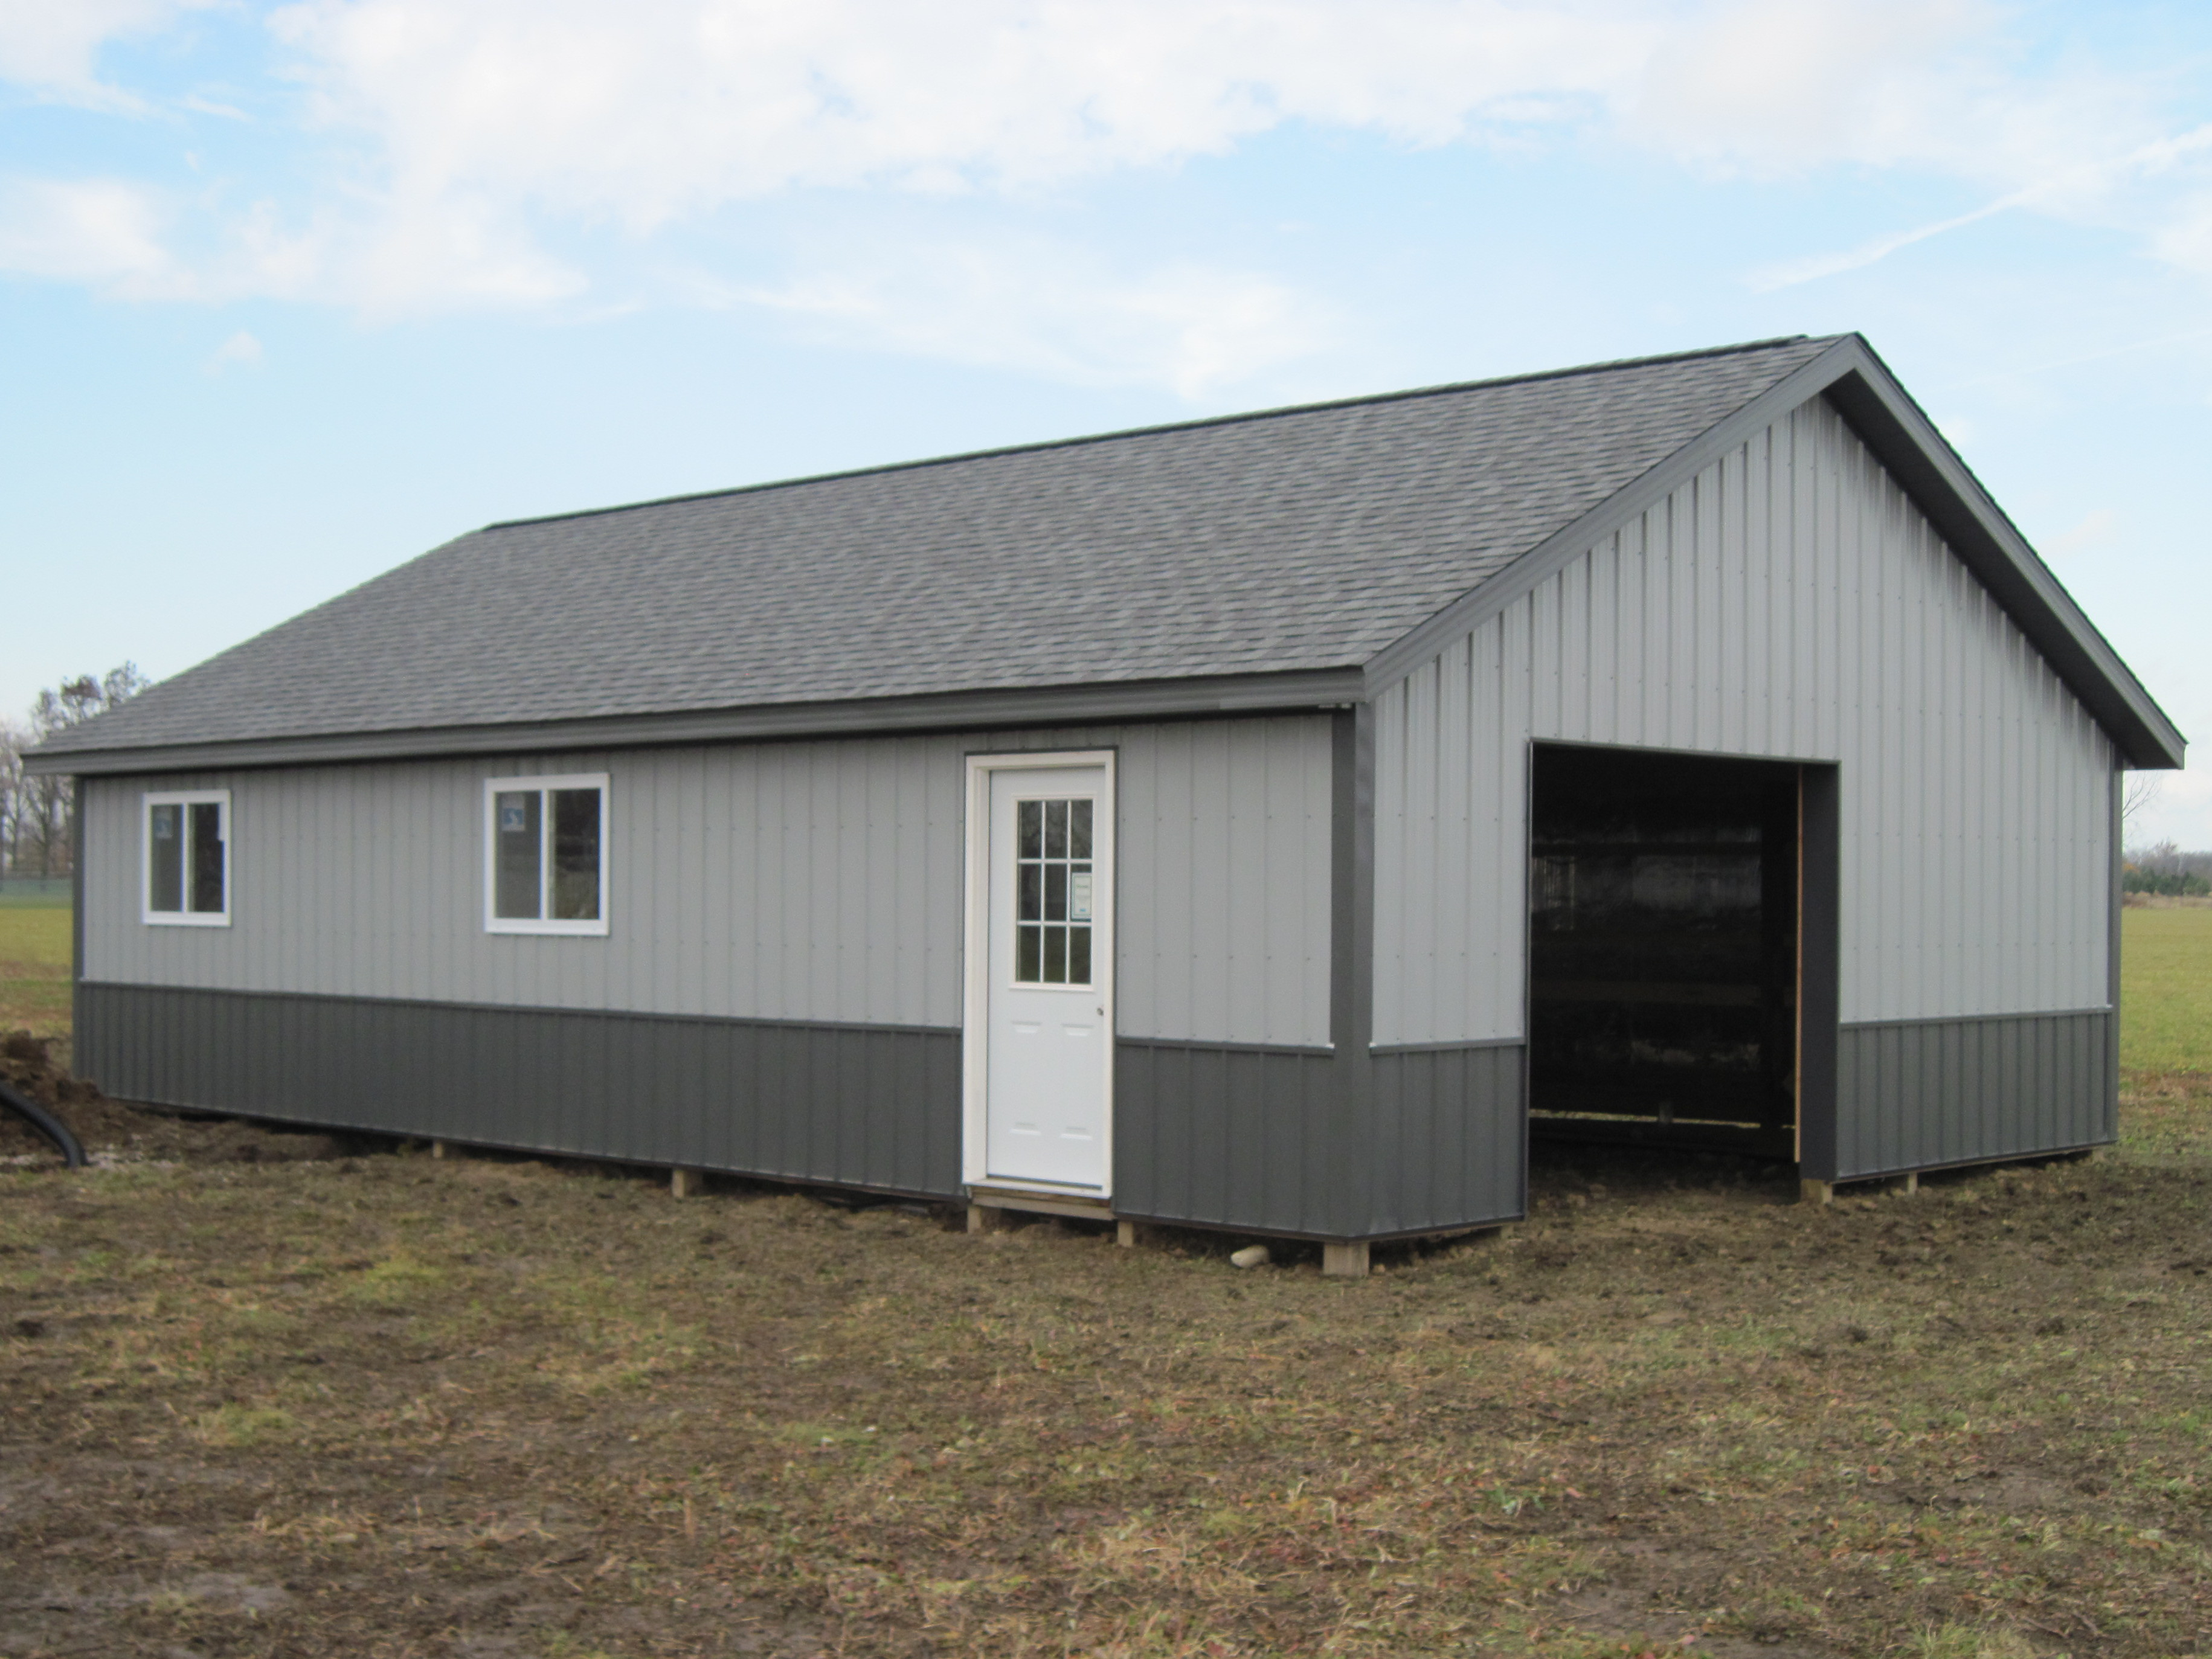 Gallery as well Pole Barns besides Flat Roof also Gable Roof together with Metal Pole Barn Home Floor Plans. on pole barn home gallery